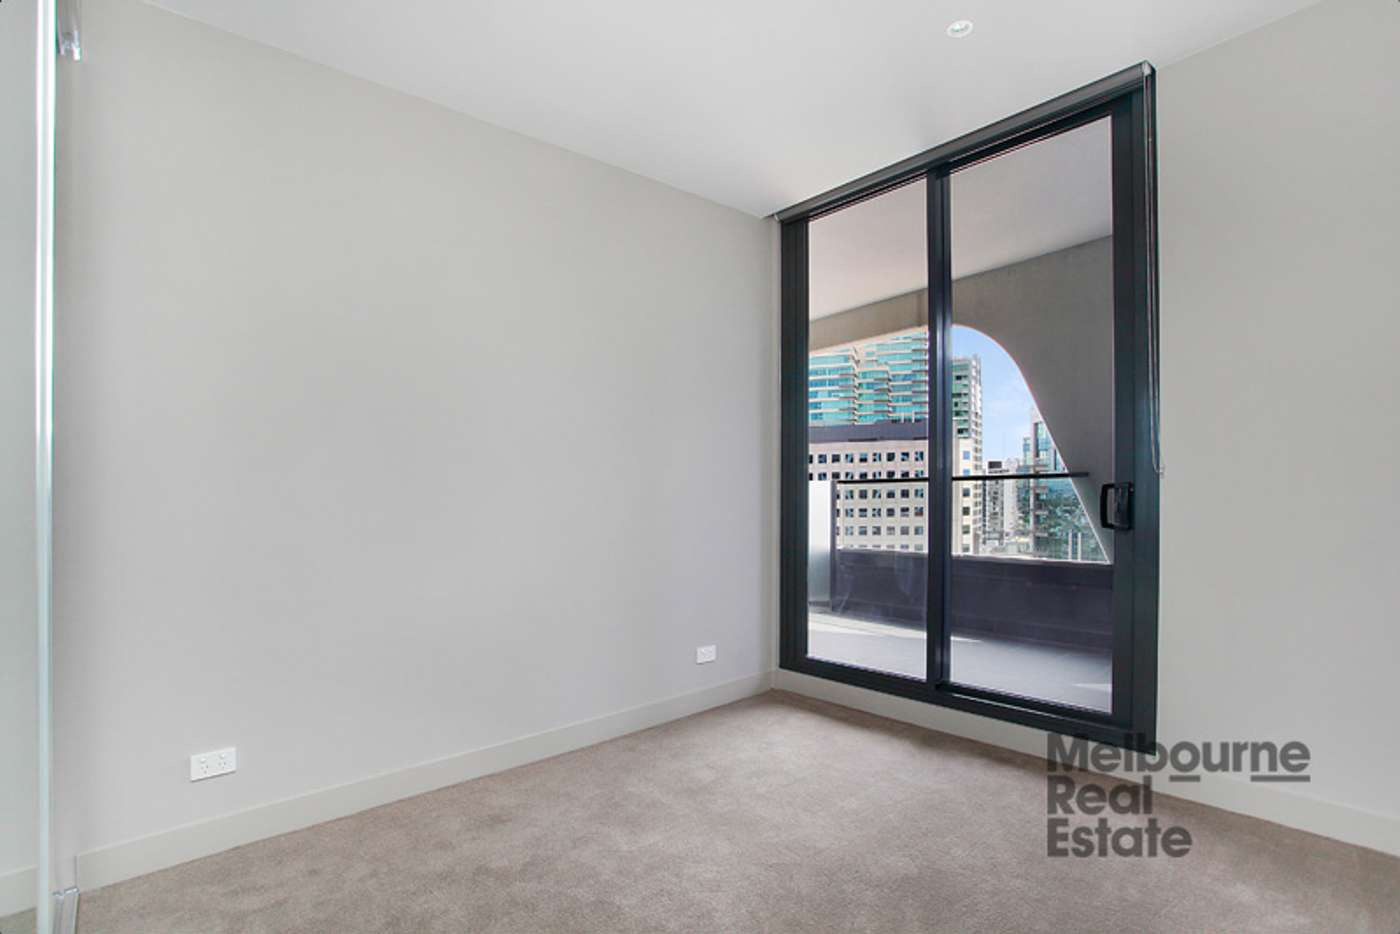 Seventh view of Homely apartment listing, 1804/38 Albert Road, South Melbourne VIC 3205